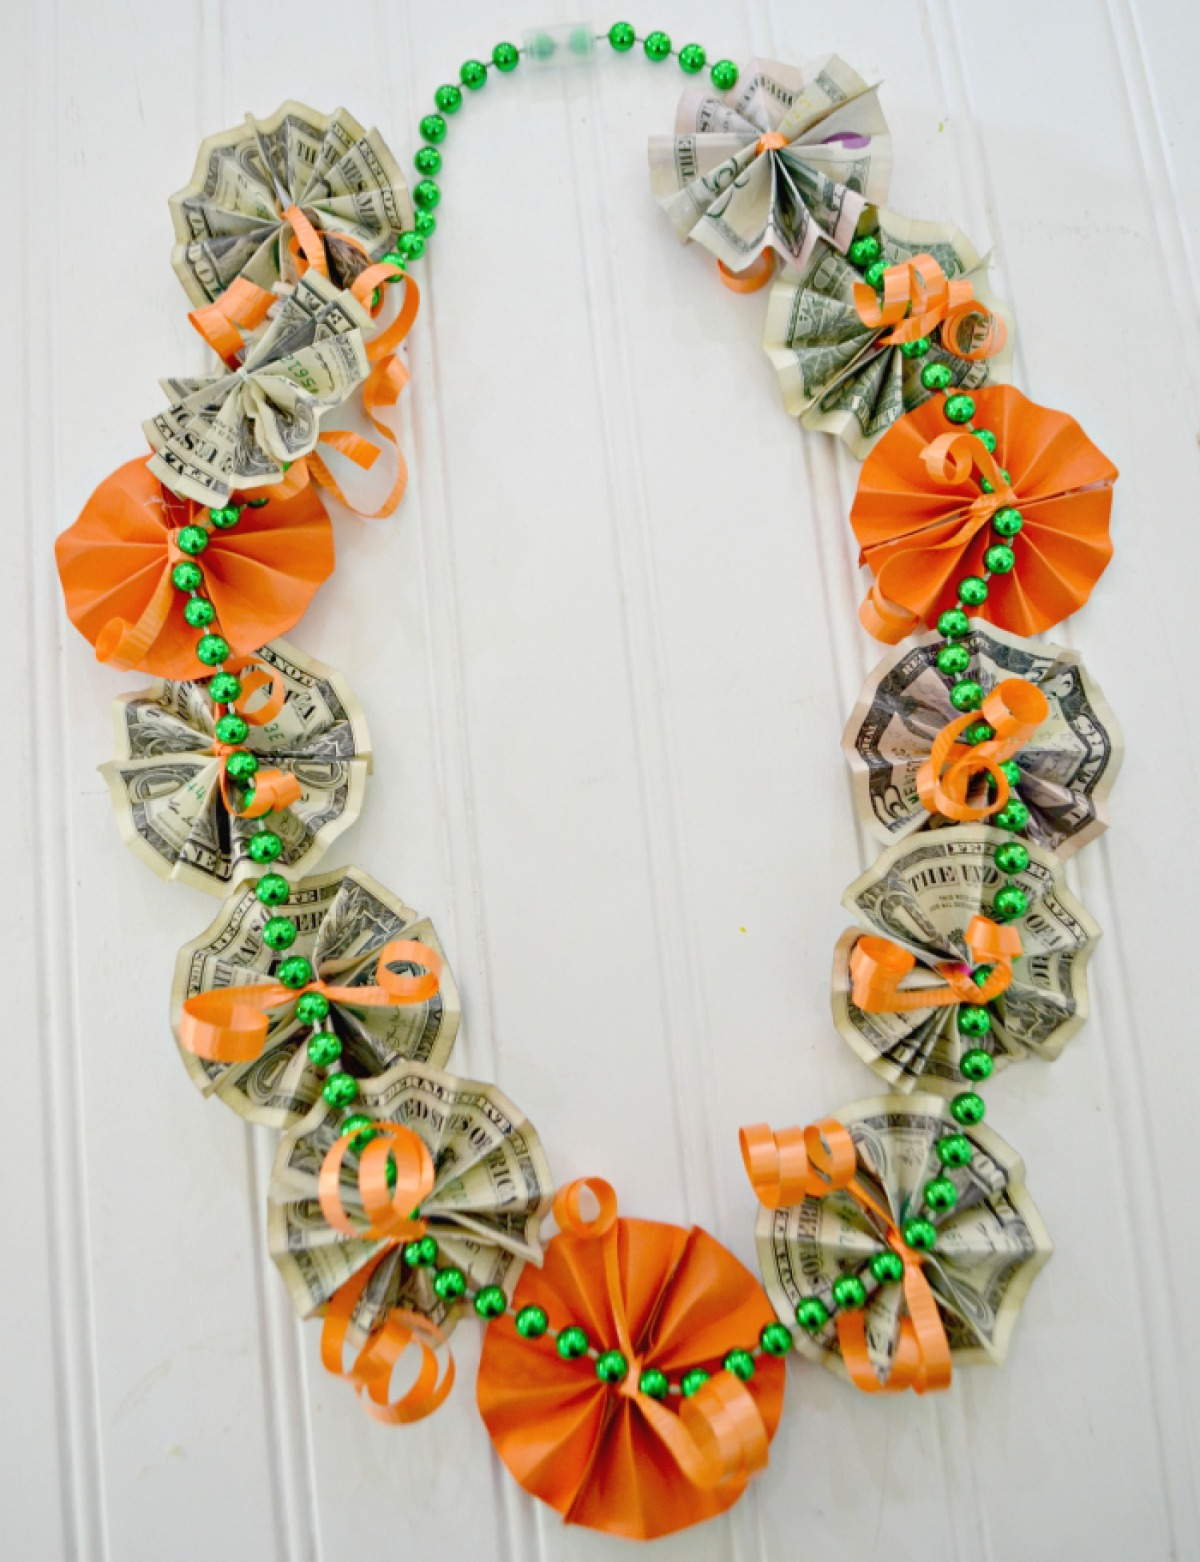 graduation money lei made from paper flowers and dollar bills